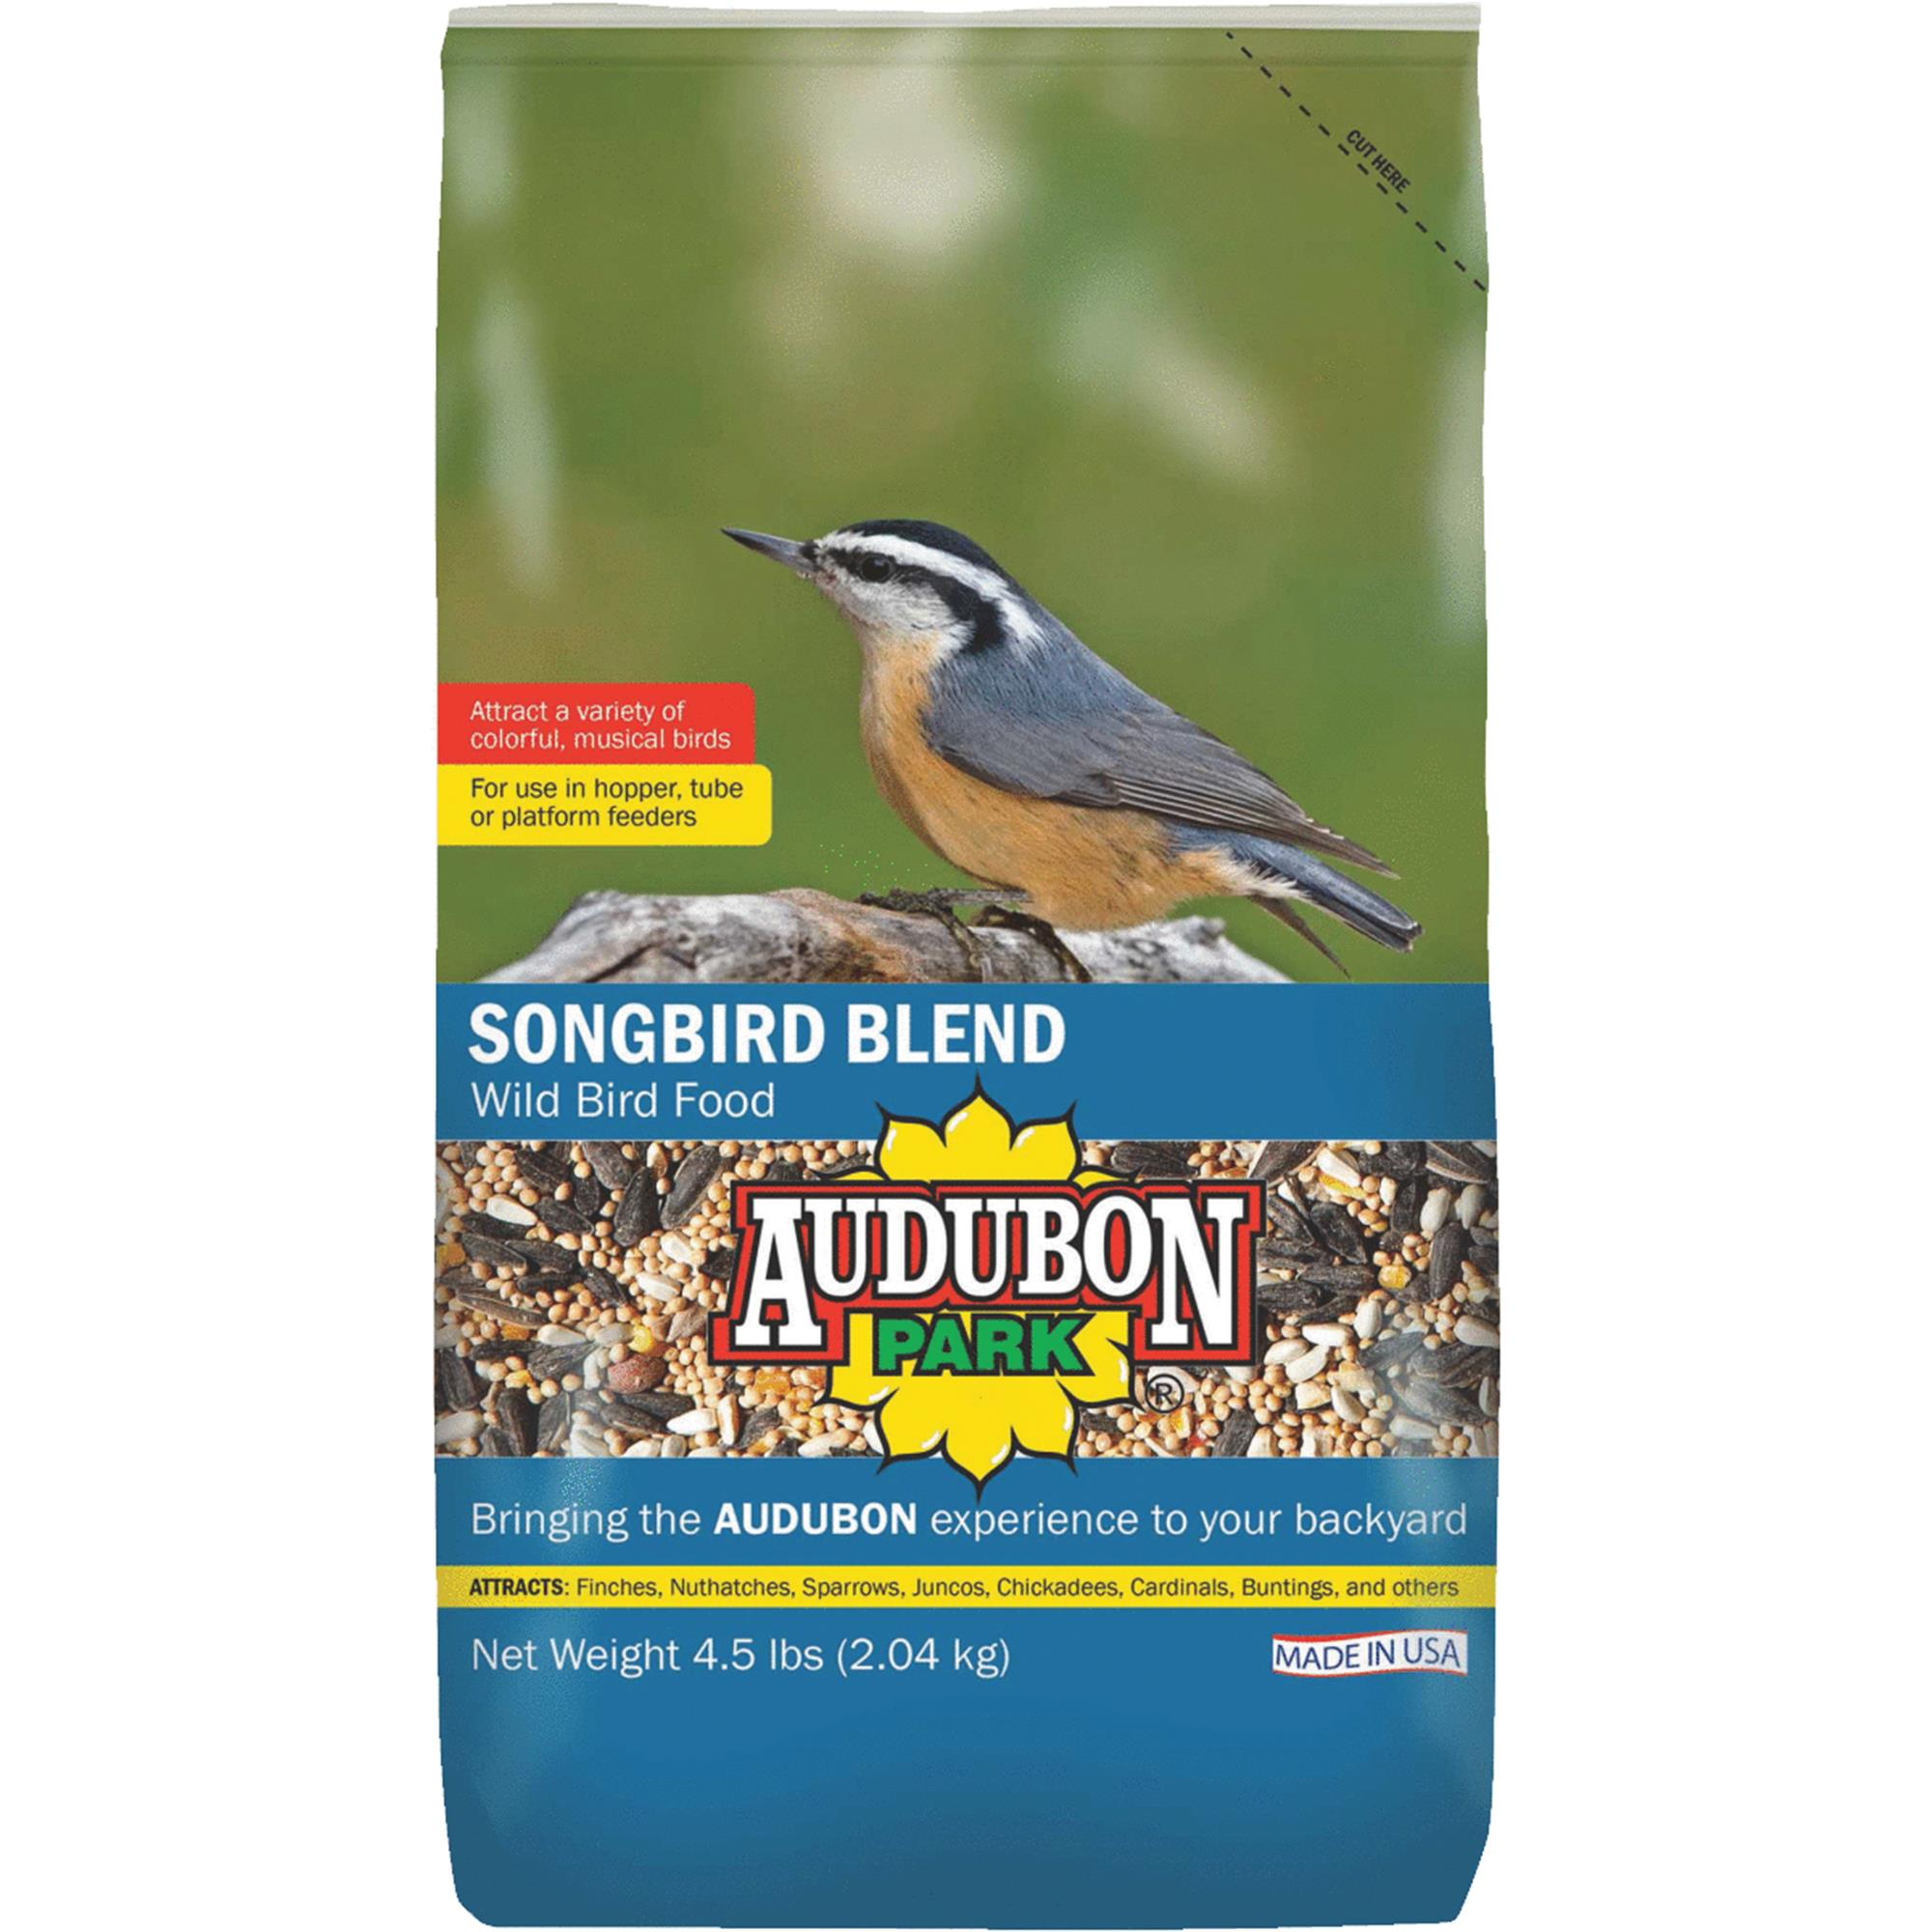 Audubon Park 10777 4.5 lb Songbird Wild Bird Food by Global Harvest/woodinville